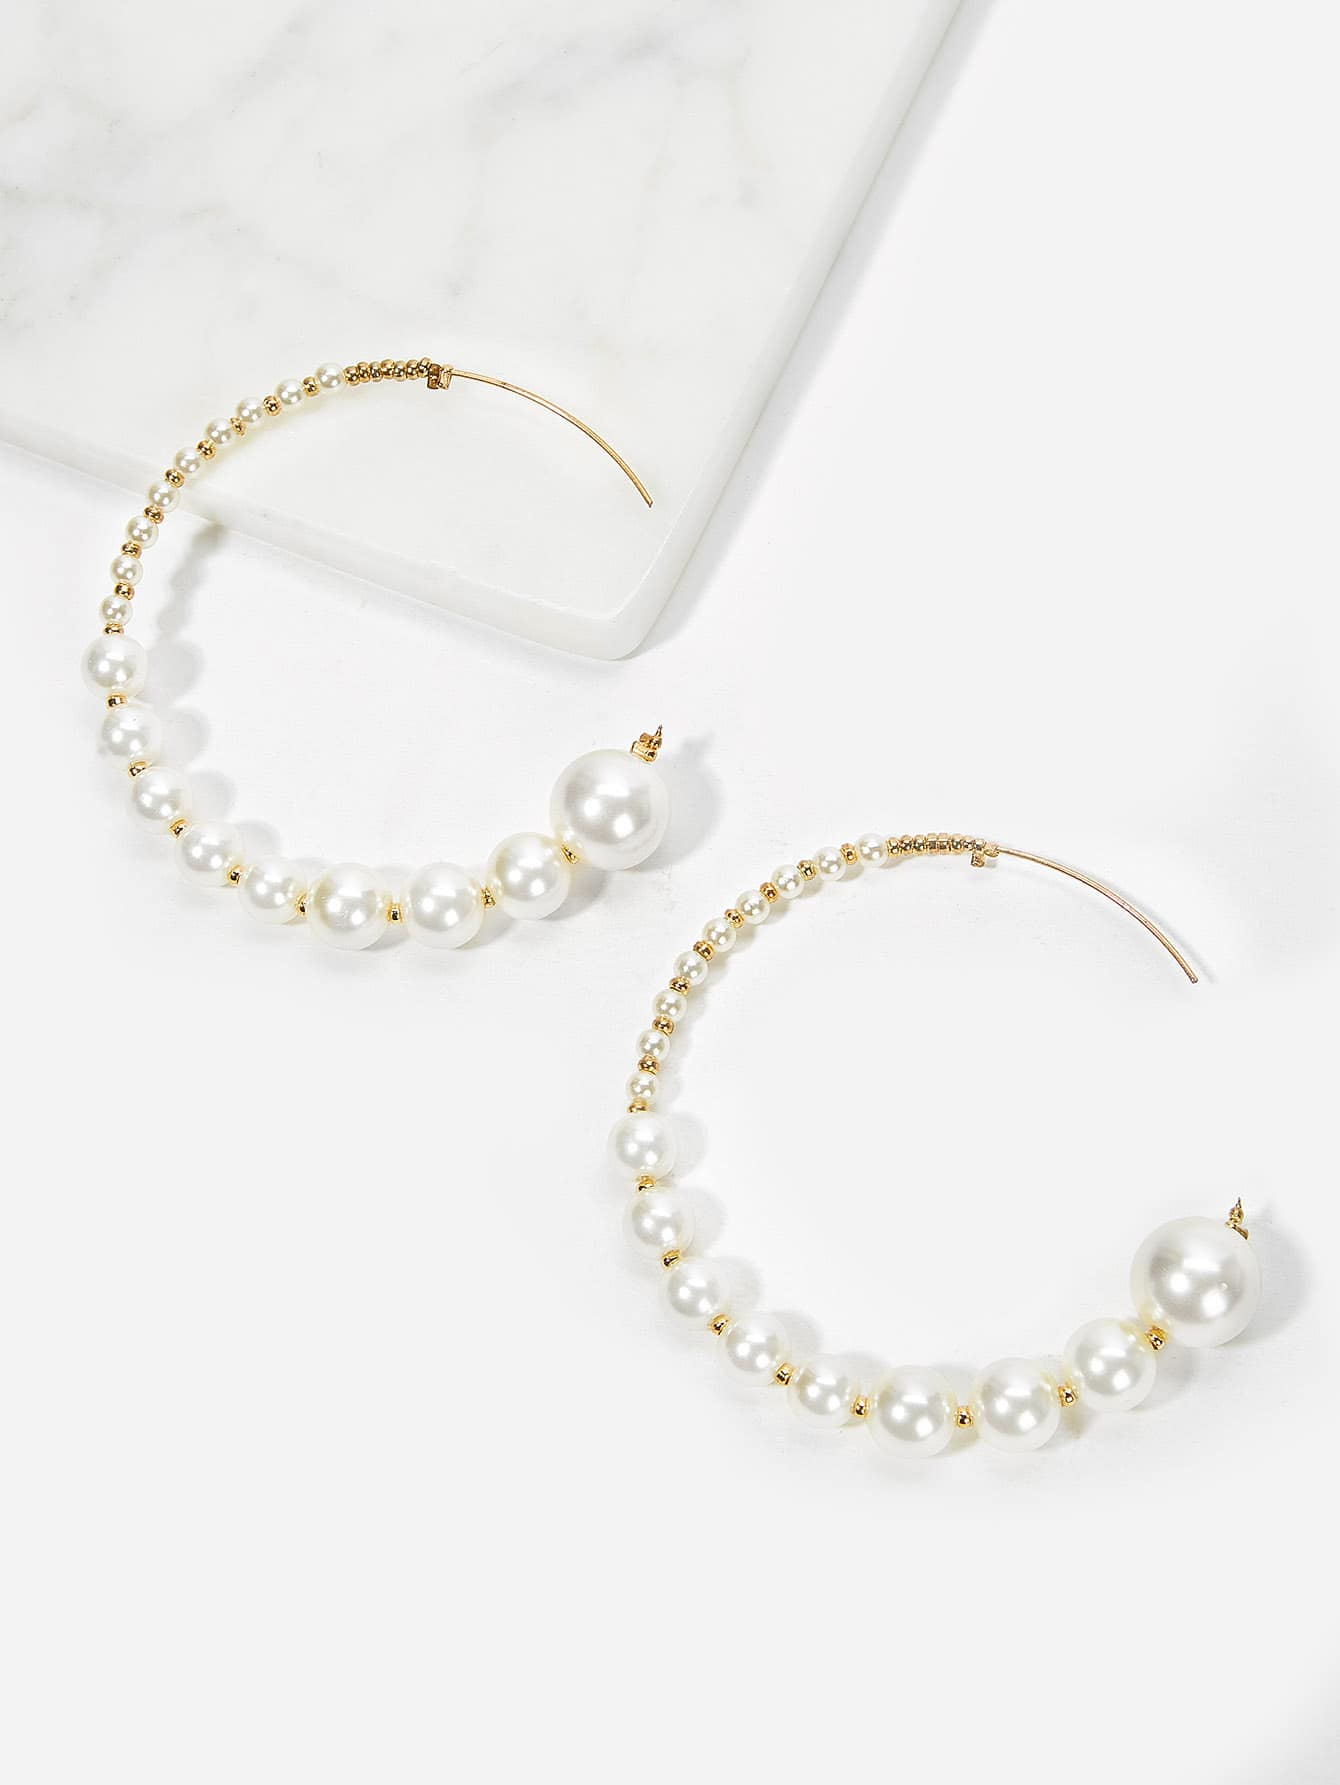 White Faux Pearl Decor 1pair Gold Hoop Earrings